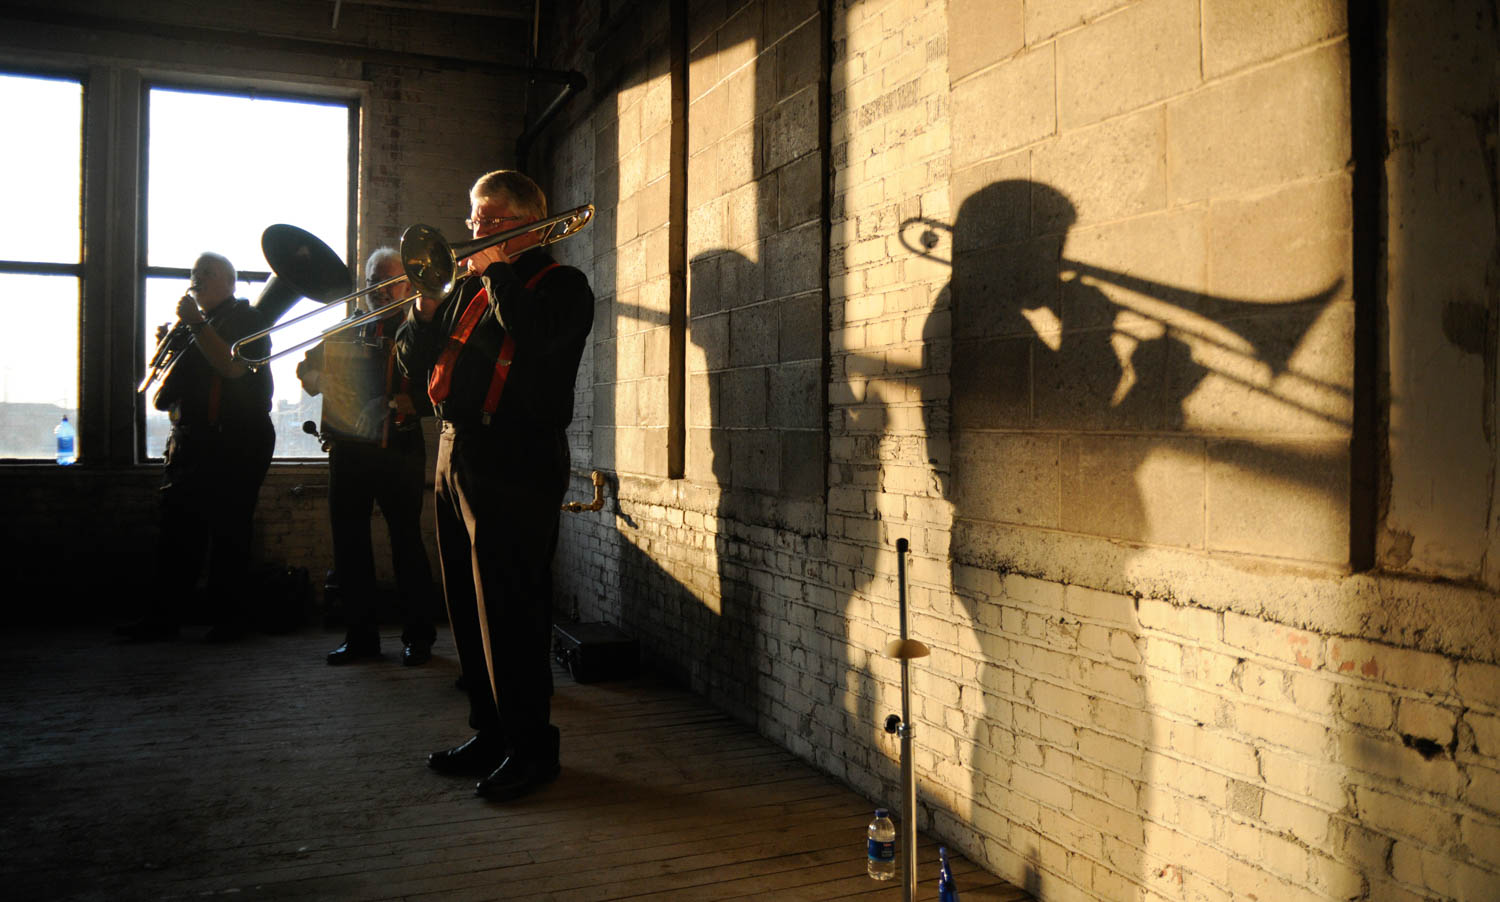 'Jinosterrifics' trombonist Jim Lee casts long shadow while he and his bandmates entertain the crowd at Thursday's ceremonial groundbreaking for the Jackson Square development late Wednesday afternoon in Rock Island. The Jackson Square project will redevelop the old Illinois Oil Products building, 321 24th Street, into 30 residential rental units and 3,700 square feet for future commercial space. (Todd Mizener - Dispatch/Argus)